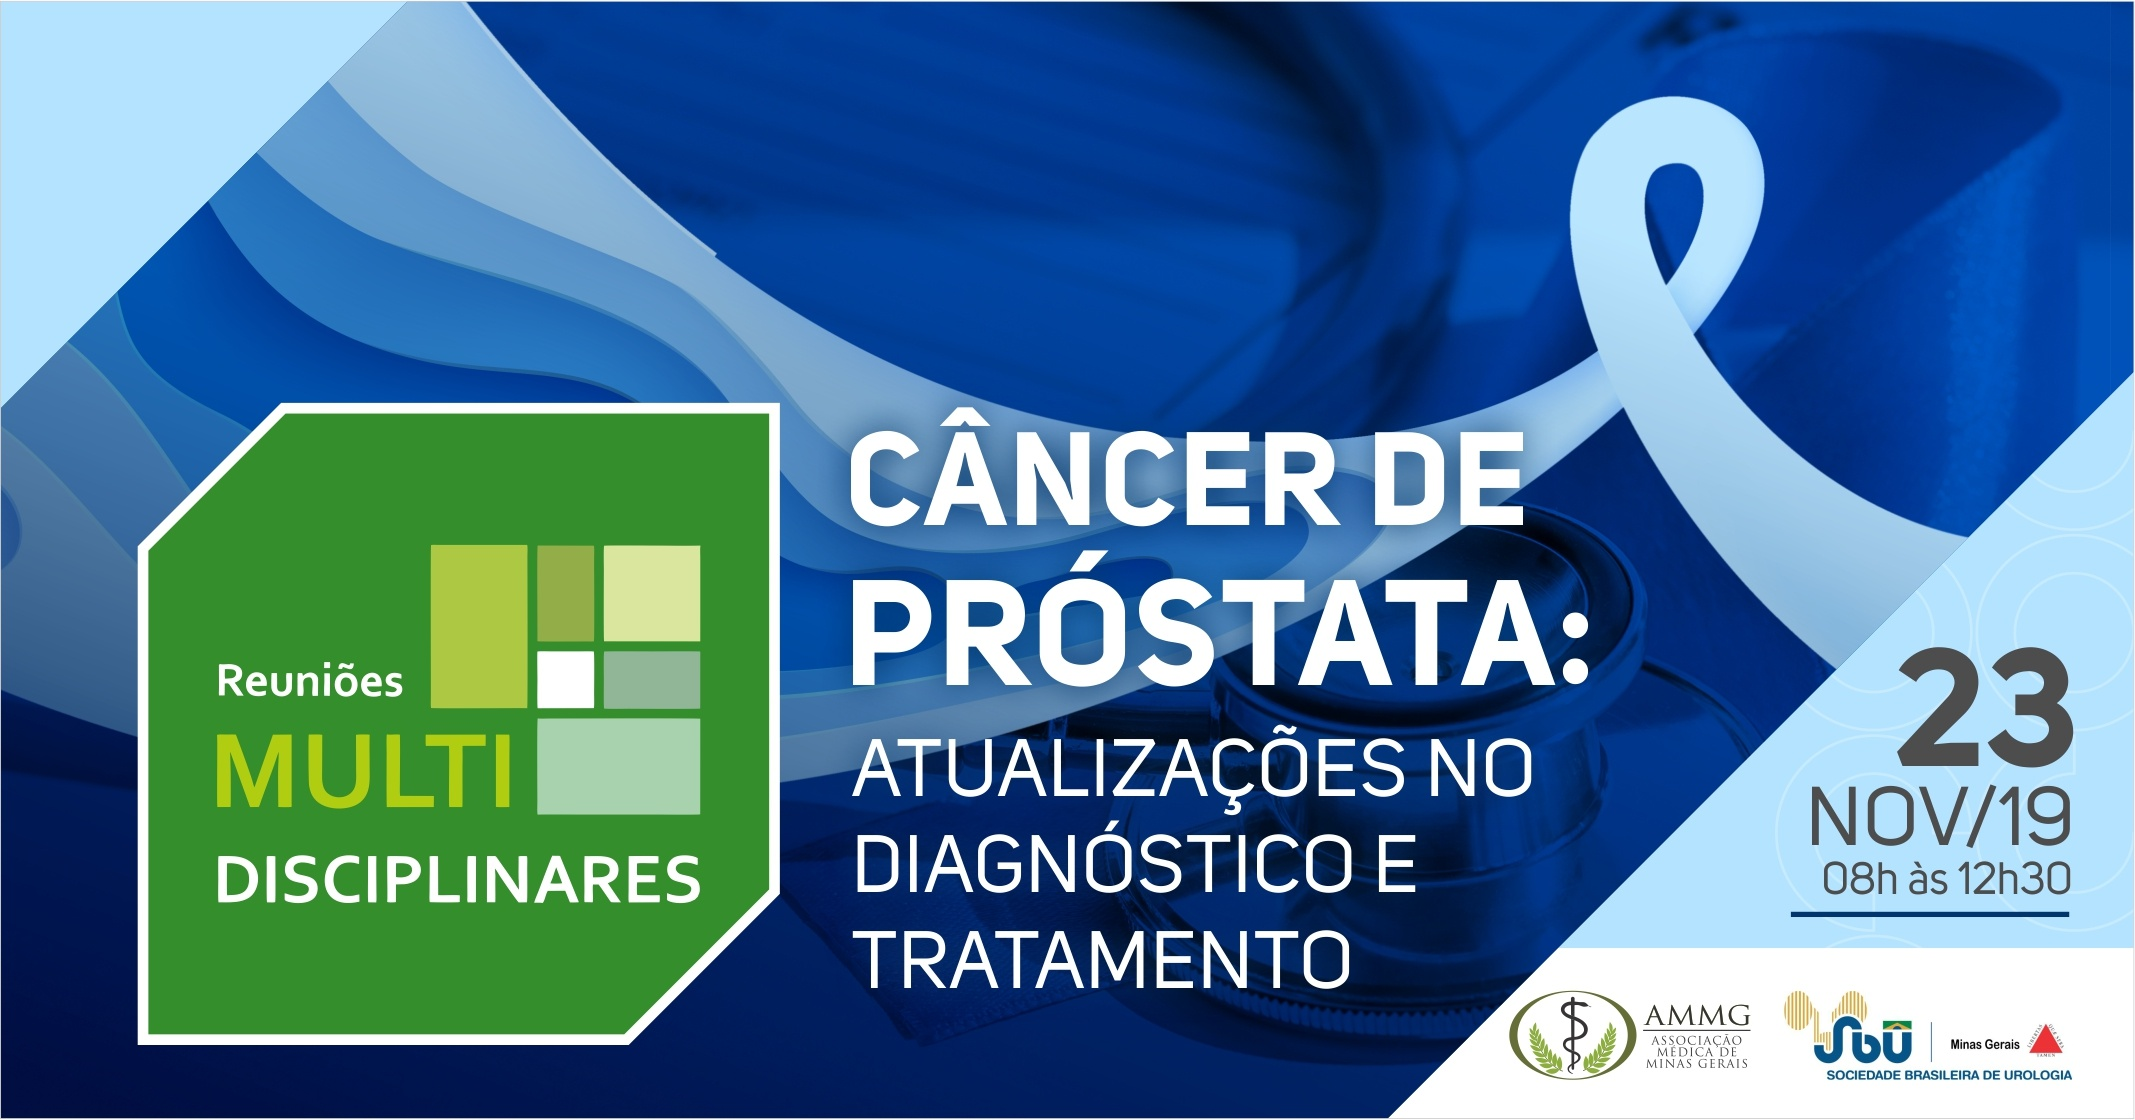 cancer de prostata risco intermediario